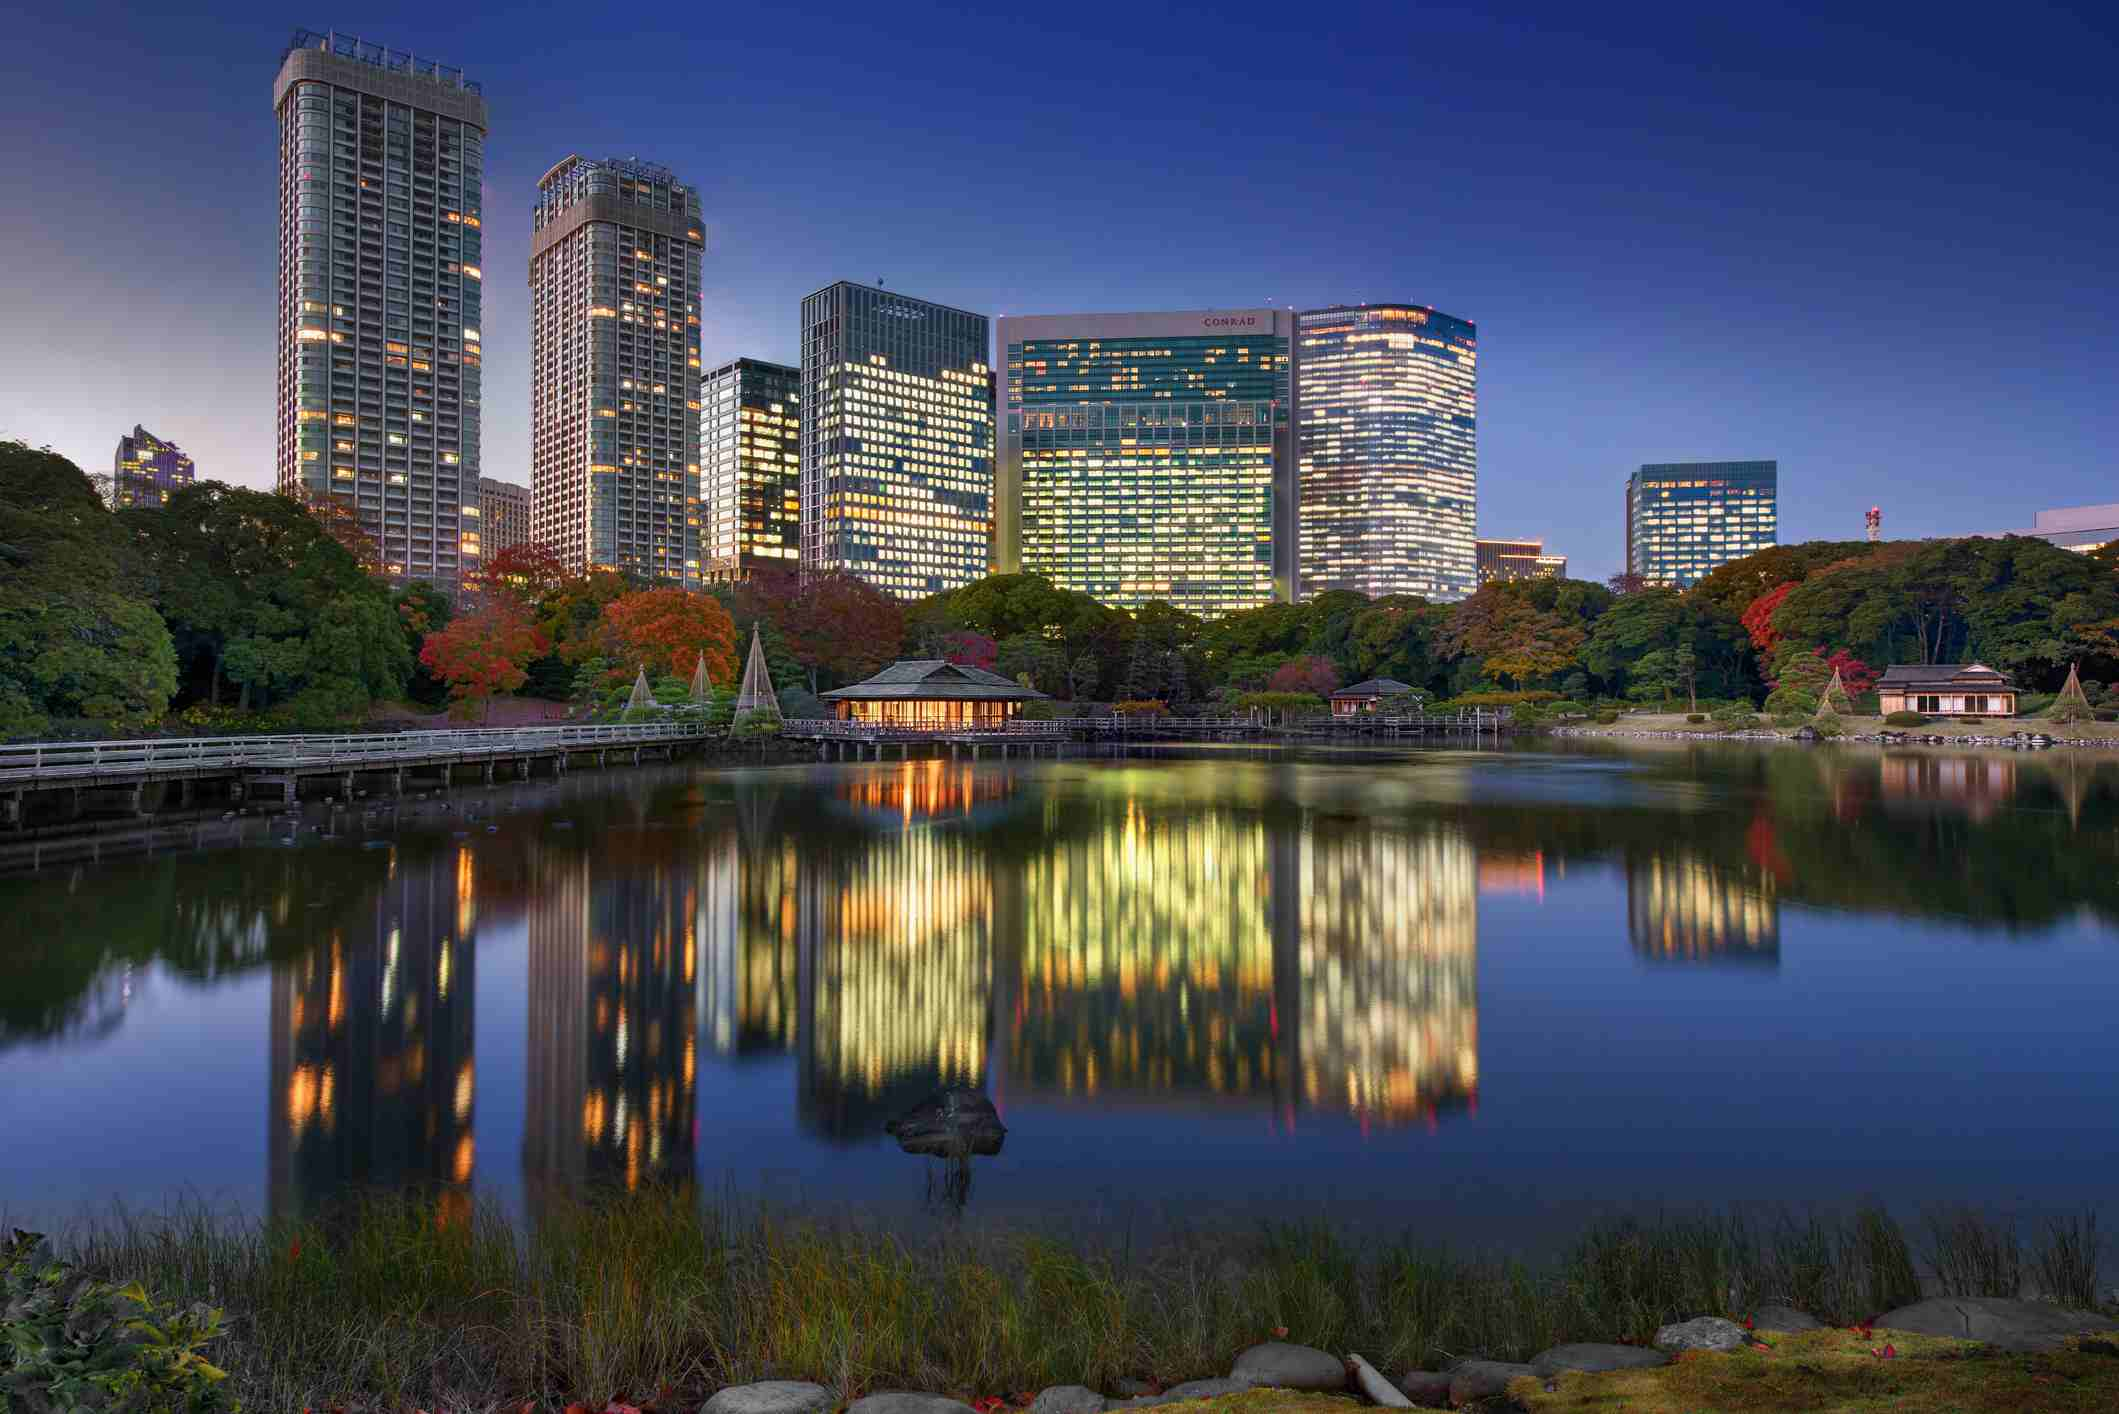 Hamarikyu Gardens' seawater pond reflects a traditional Japanese teahouse and Shiodome skyscrapers in autumn colors at dusk.